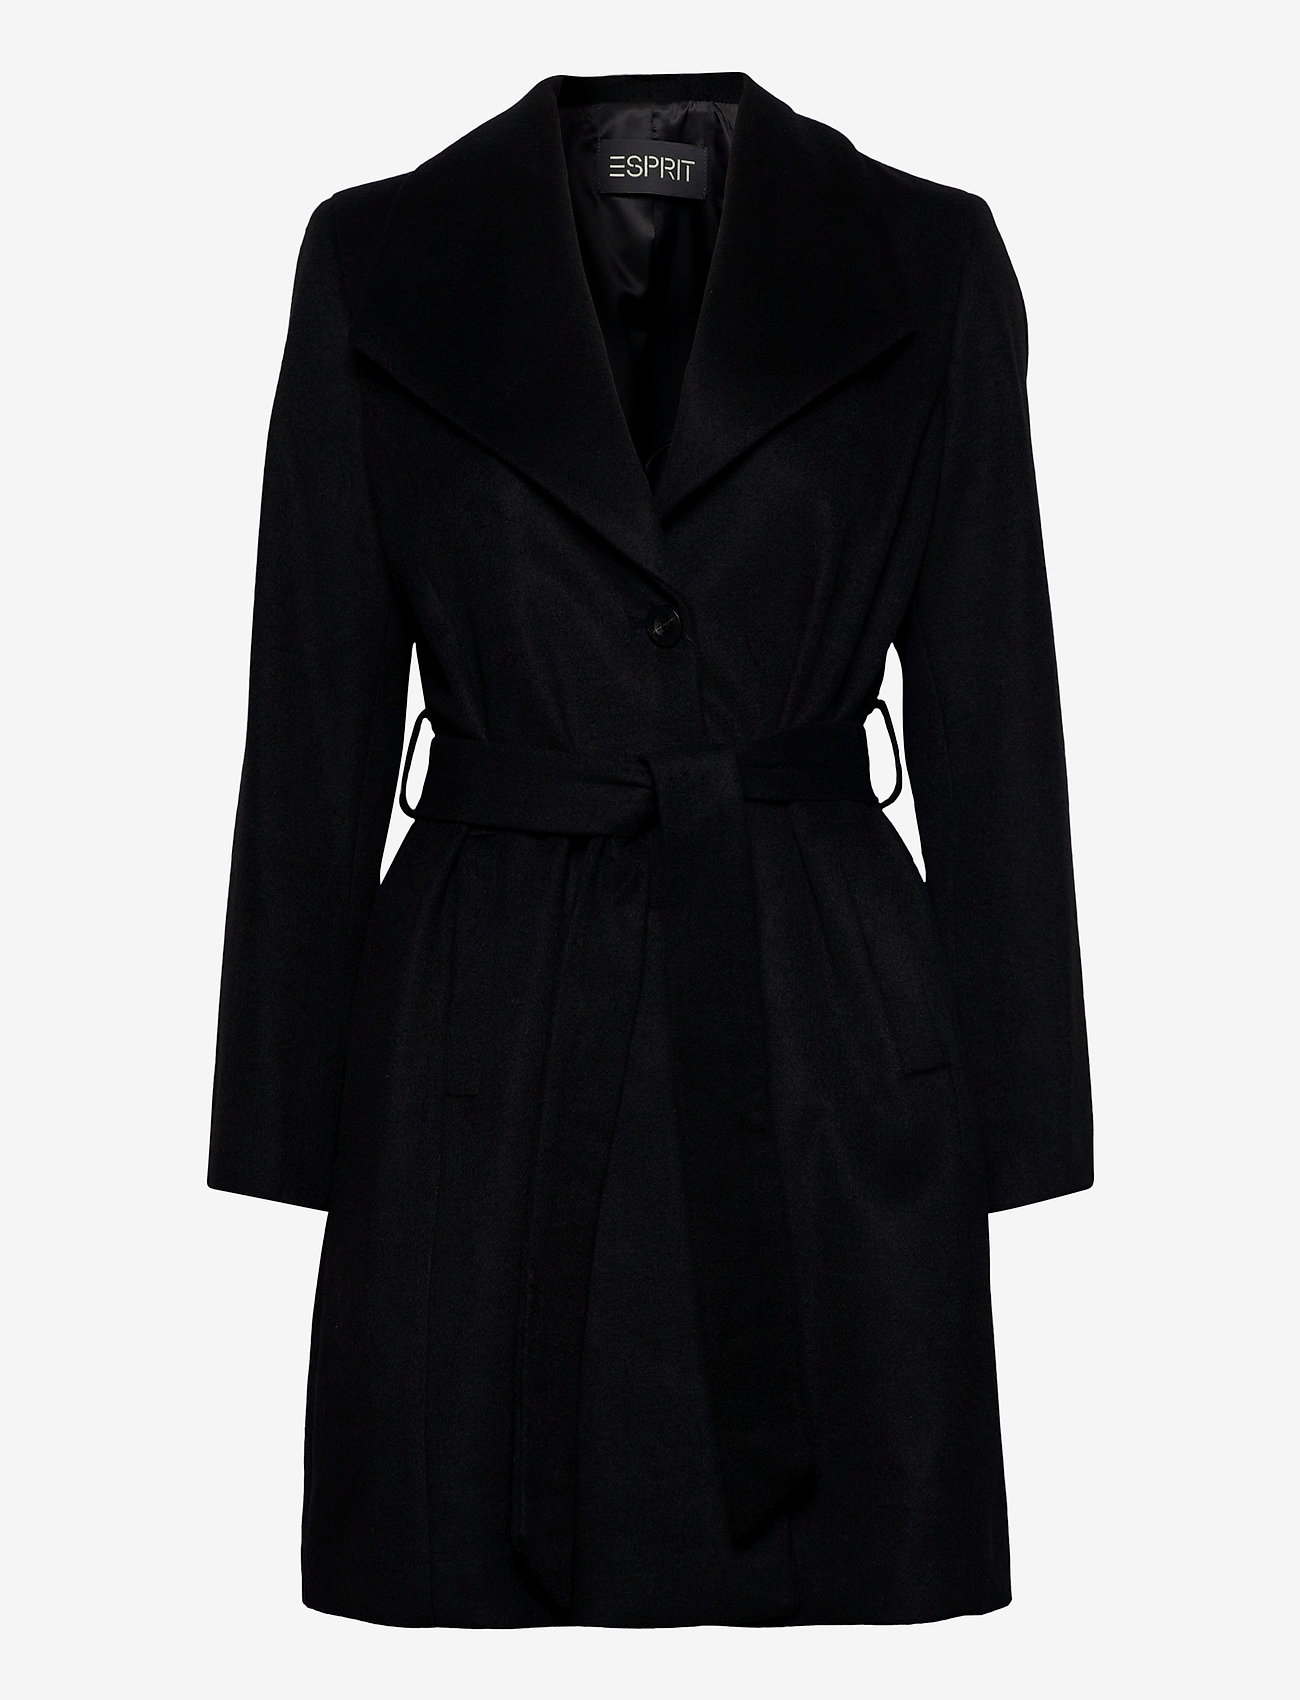 Esprit Collection - Coats woven - manteaux en laine - black - 0